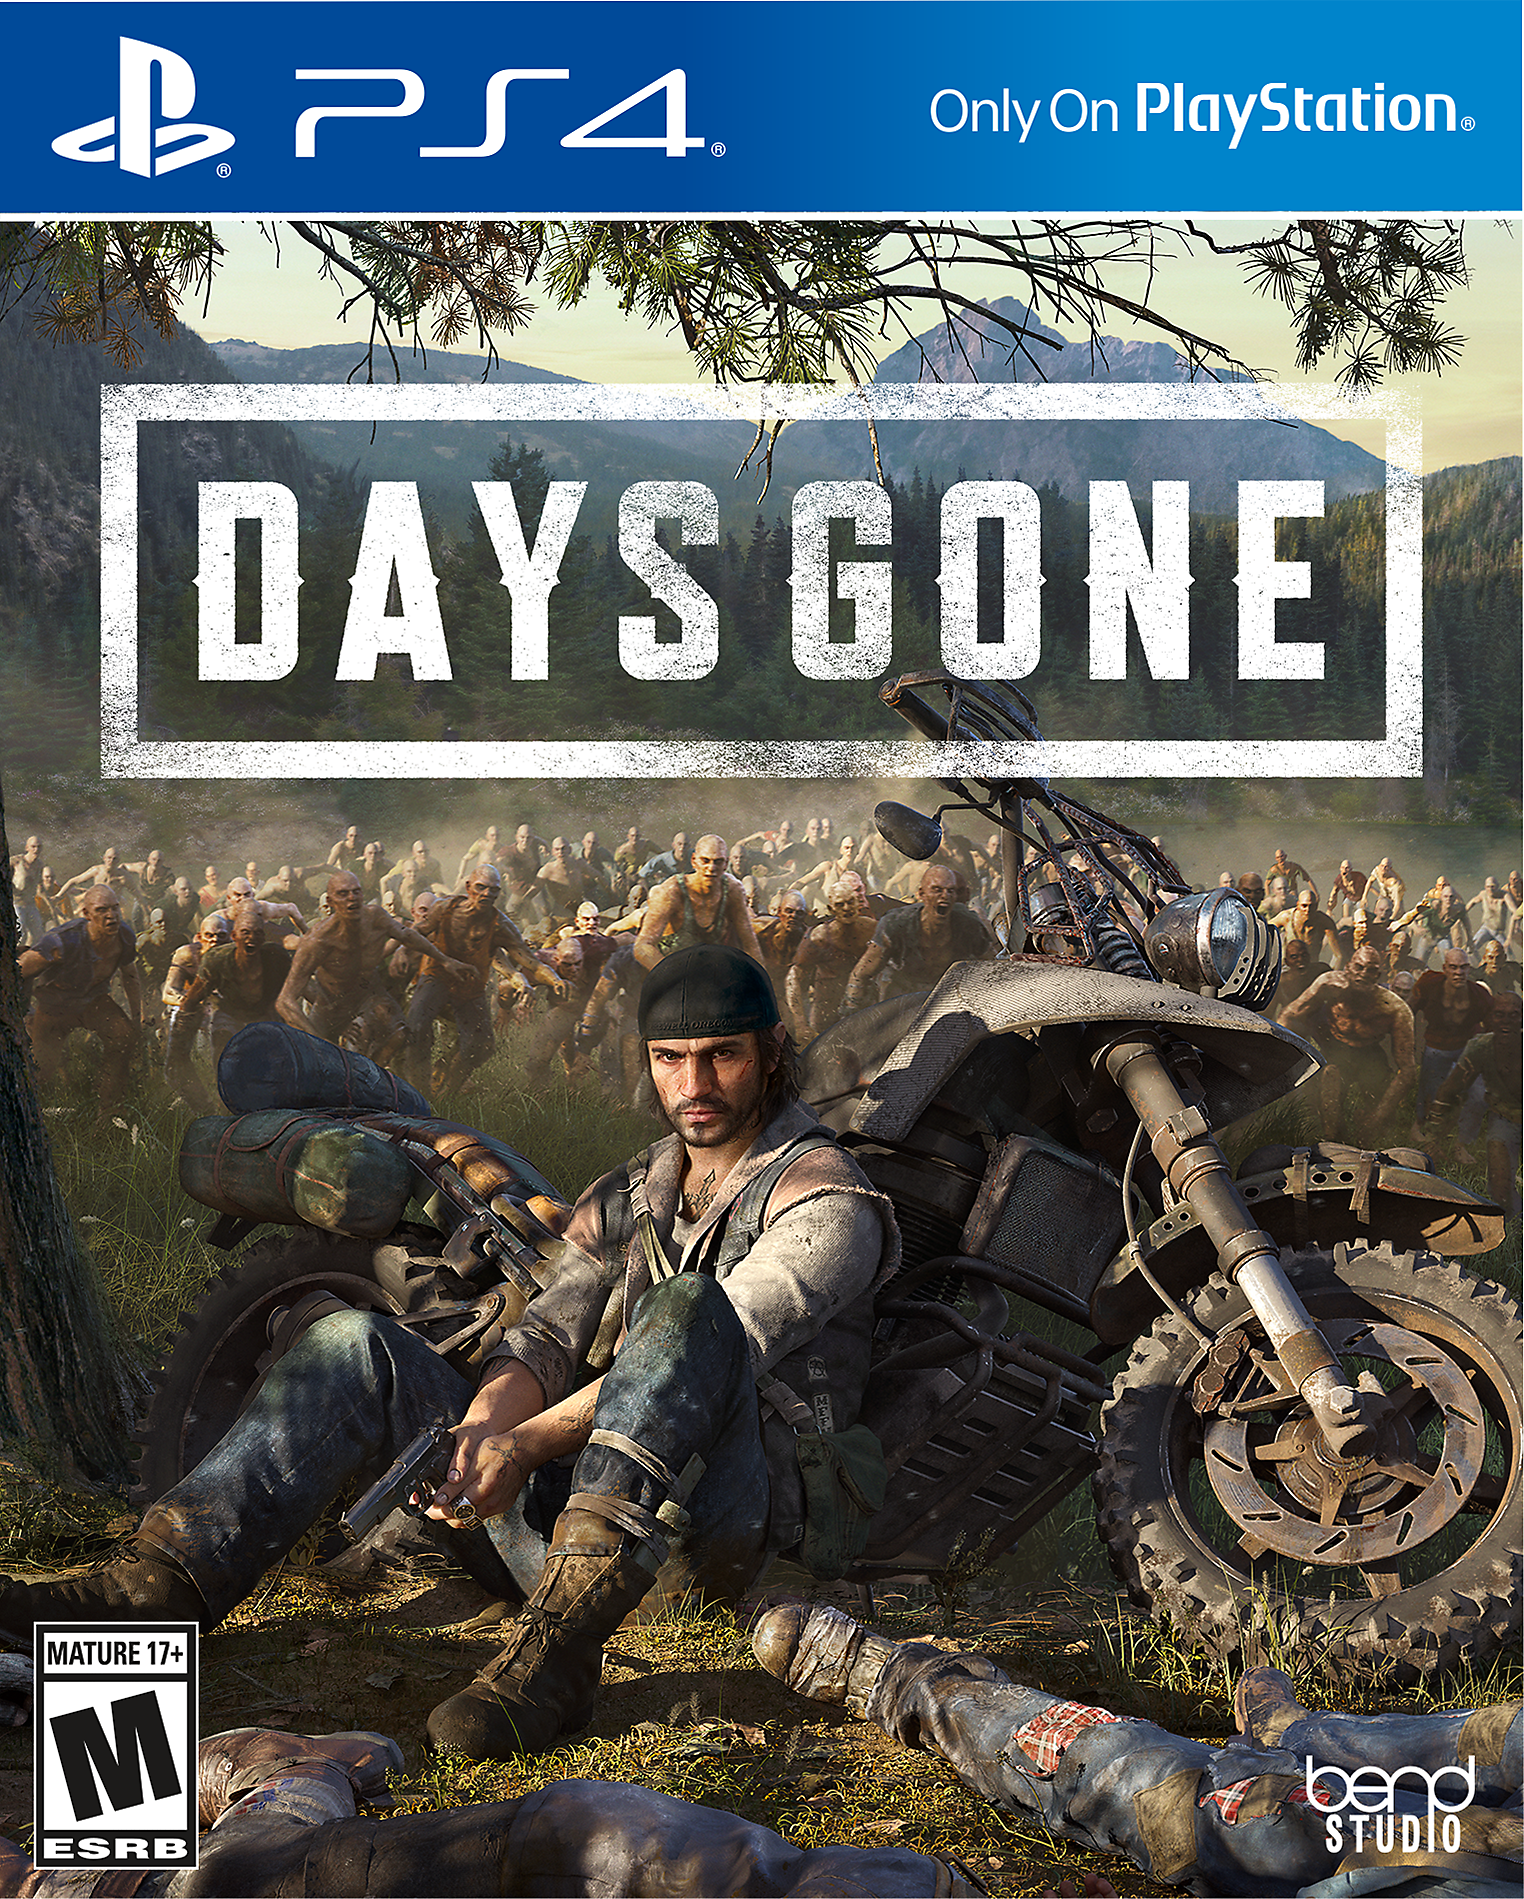 Video Games & Consoles Days Gone Ps4 Steel Book Only Buy One Give One